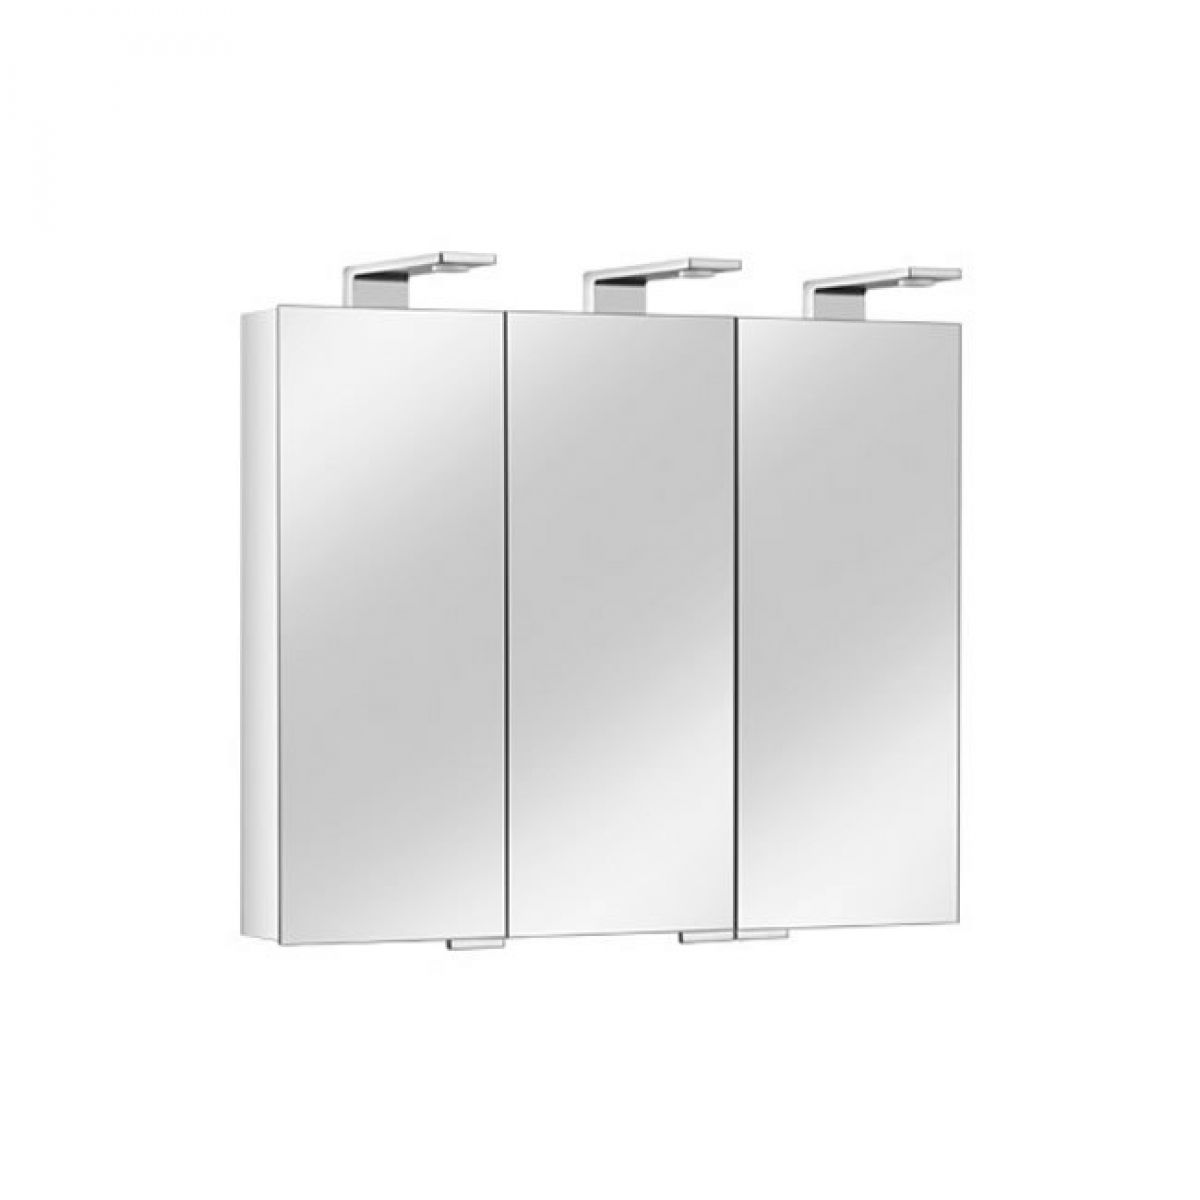 Keuco royal universe 1000mm illuminated mirror cabinet ukbathrooms - Bathroom cabinets keuco ...